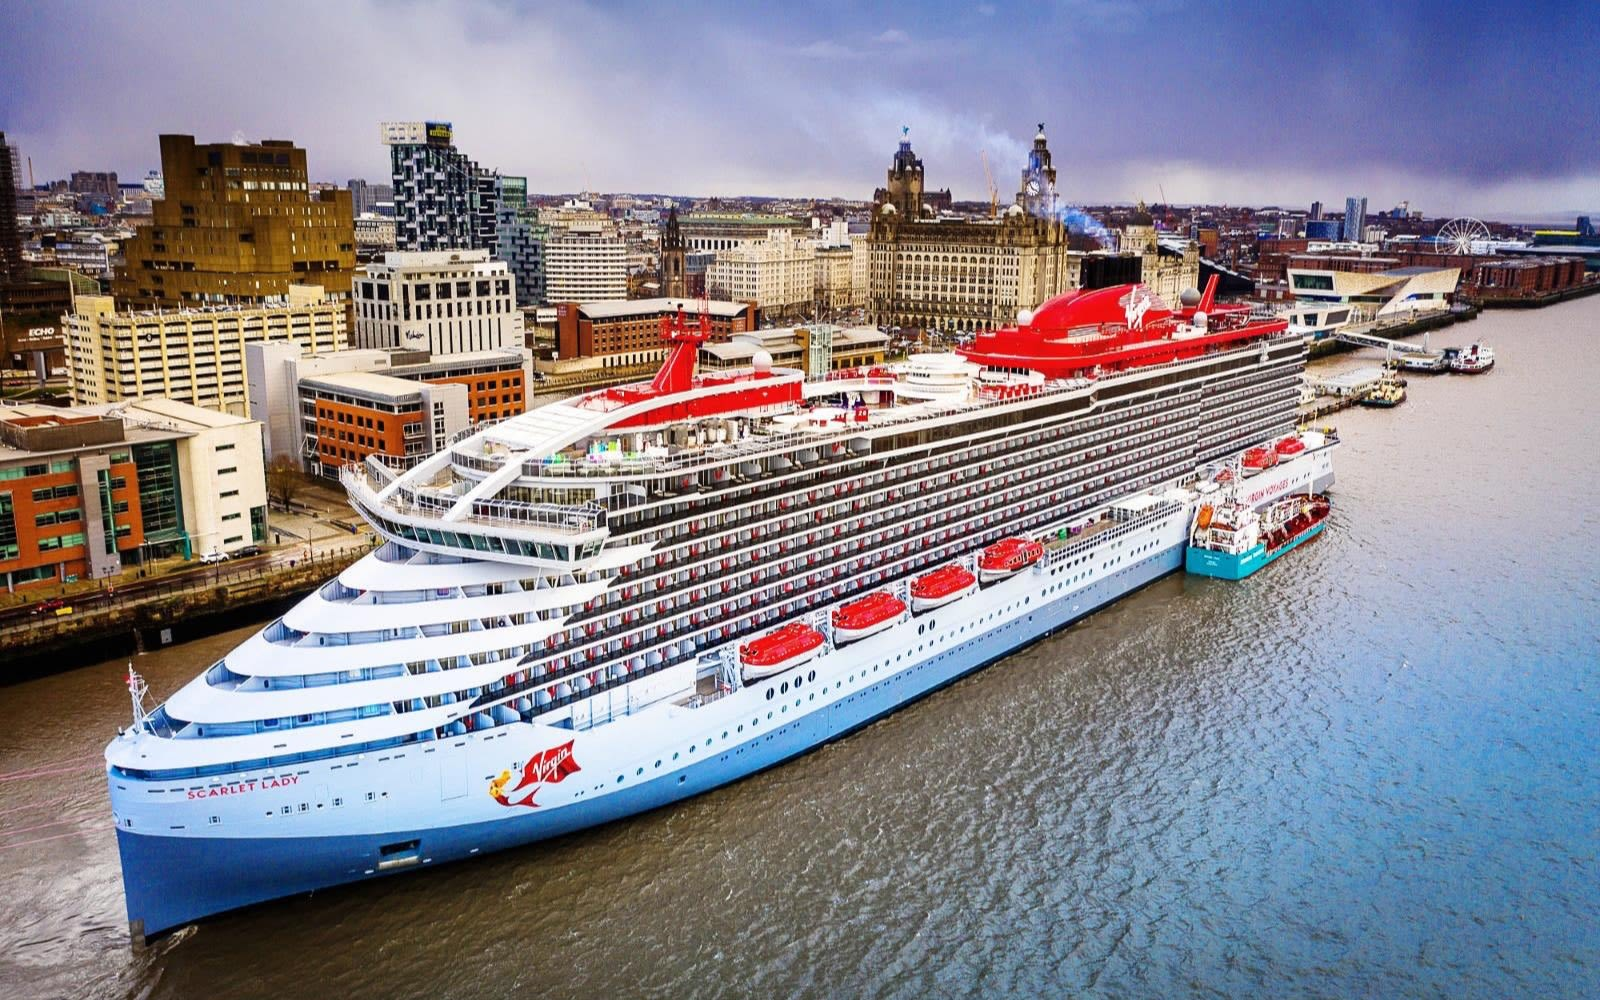 Virgin Voyages' Scarlet lady arrives in Liverpool